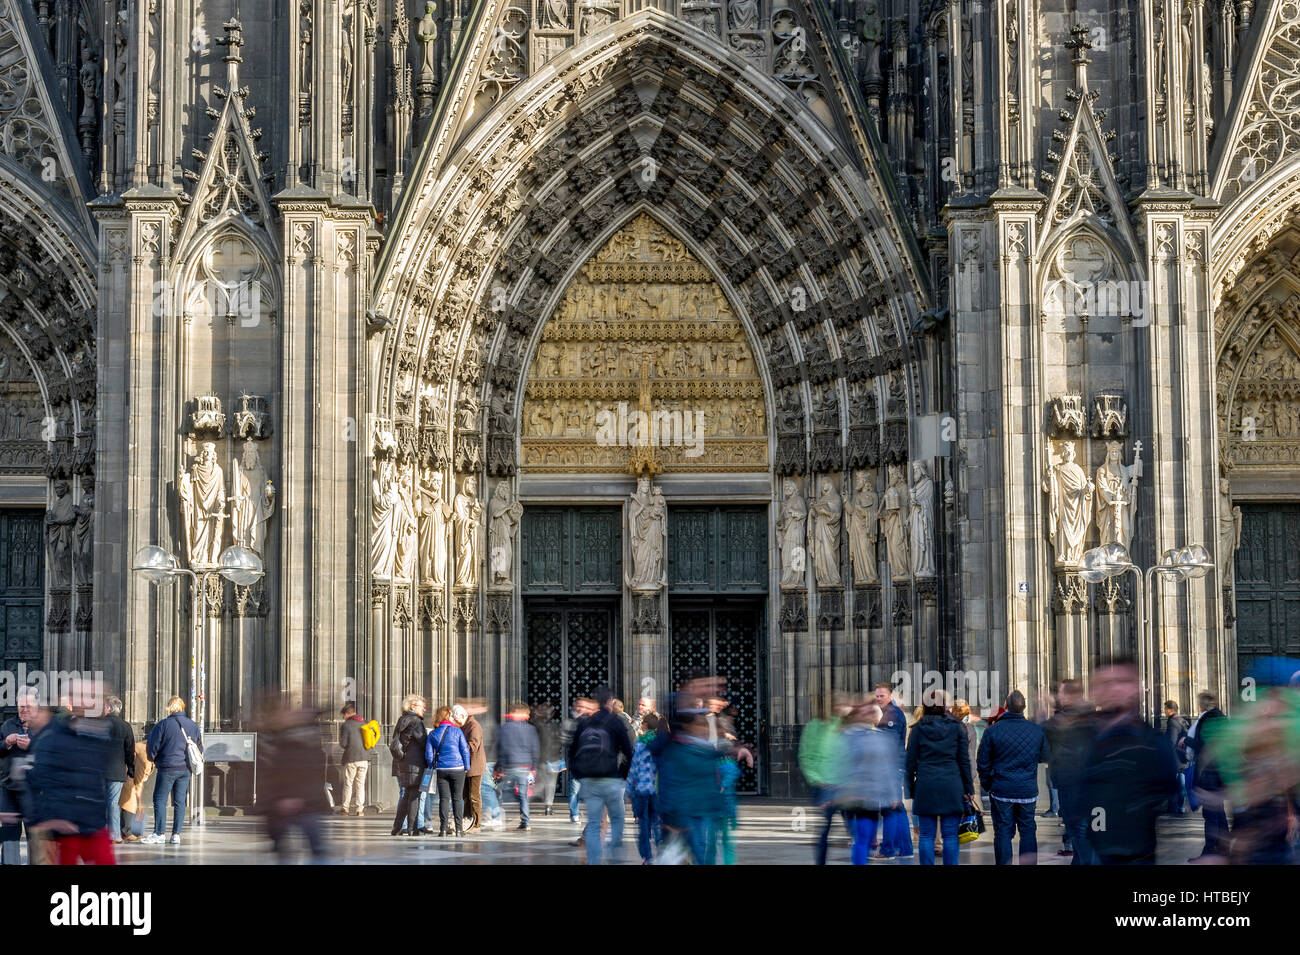 Main entrance Cologne Cathedral, west facade, people in front of the dome, Cologne, North Rhine-Westphalia, Germany - Stock Image